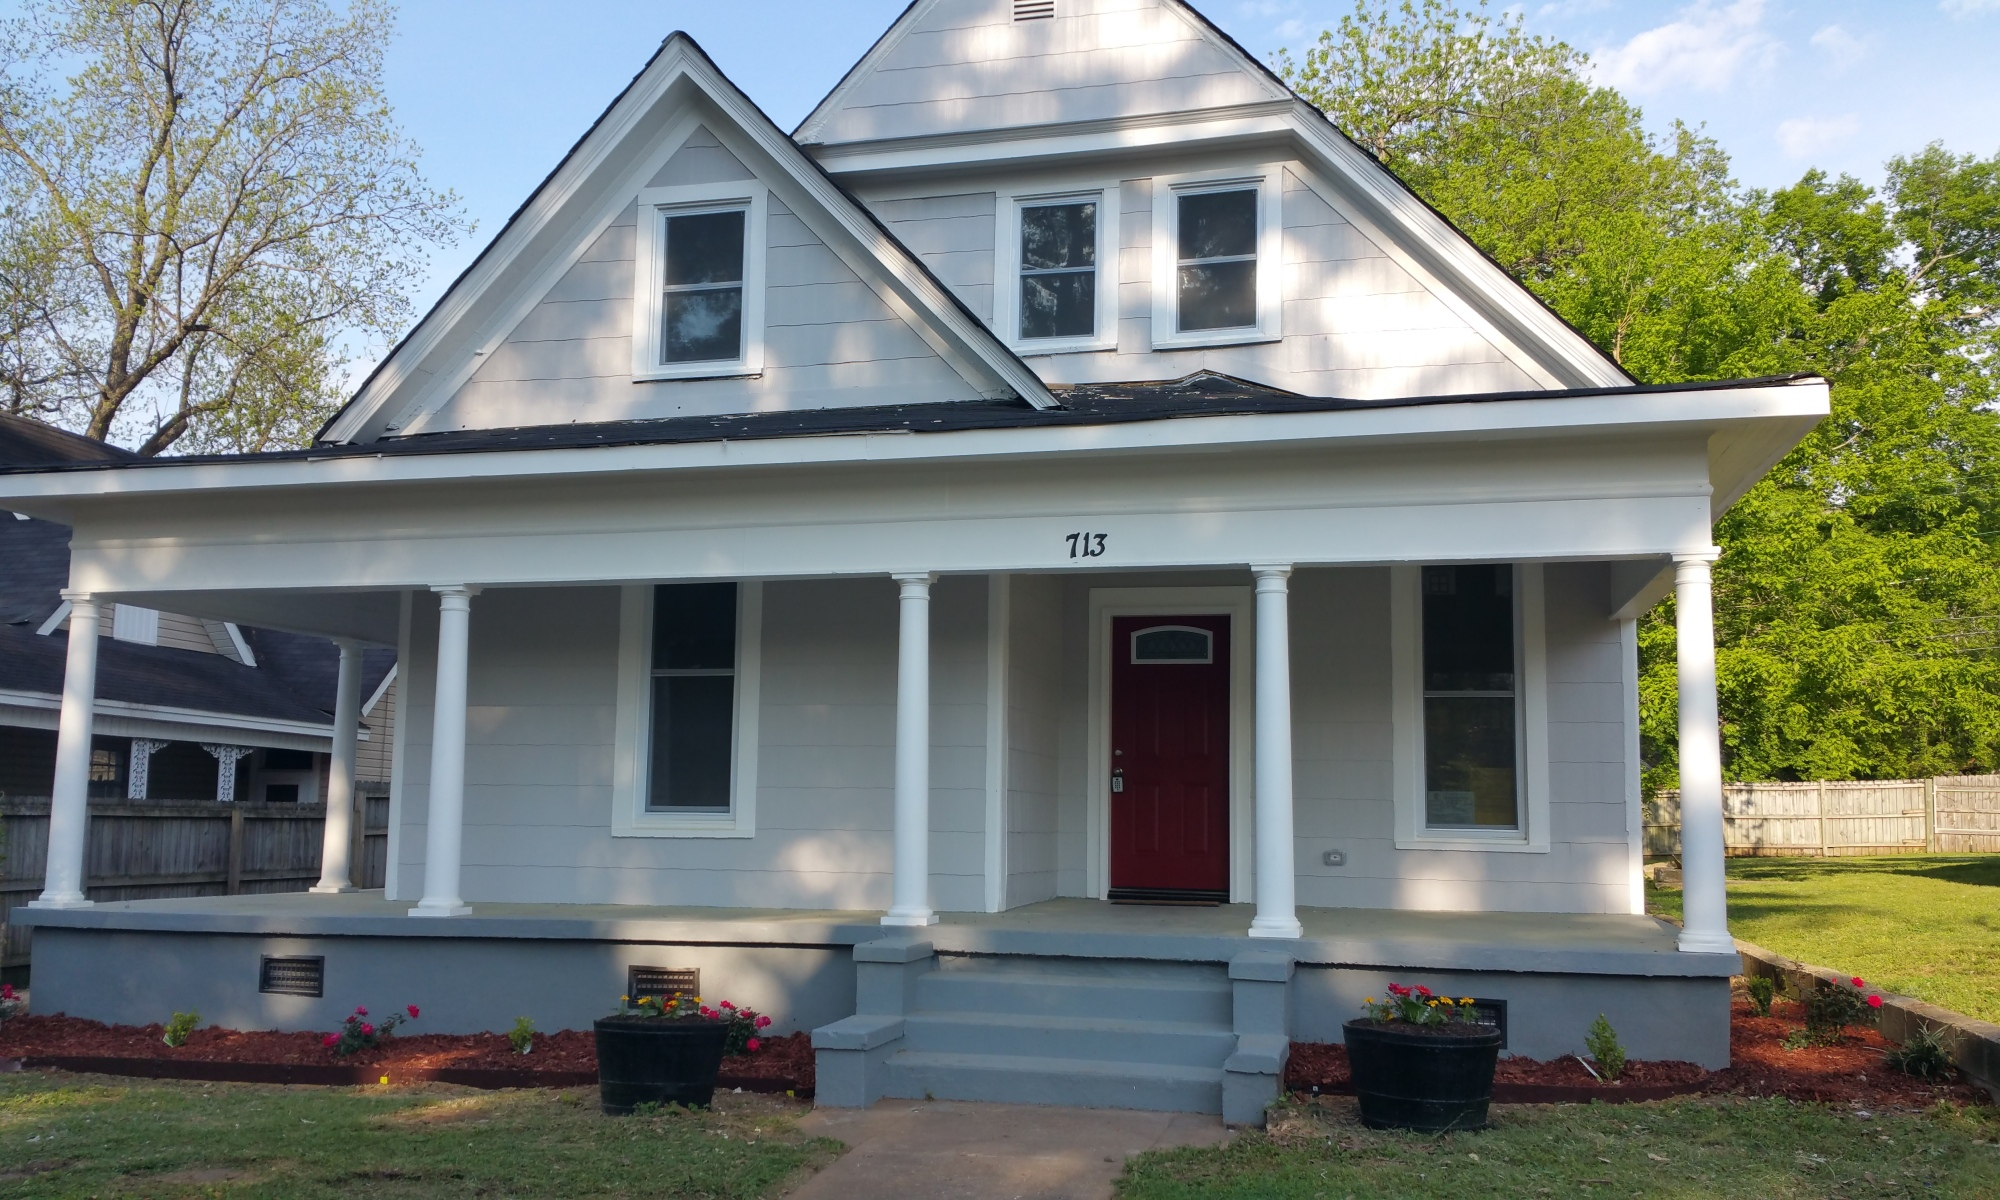 Alabama Affordable Housing - Creating Home Owners